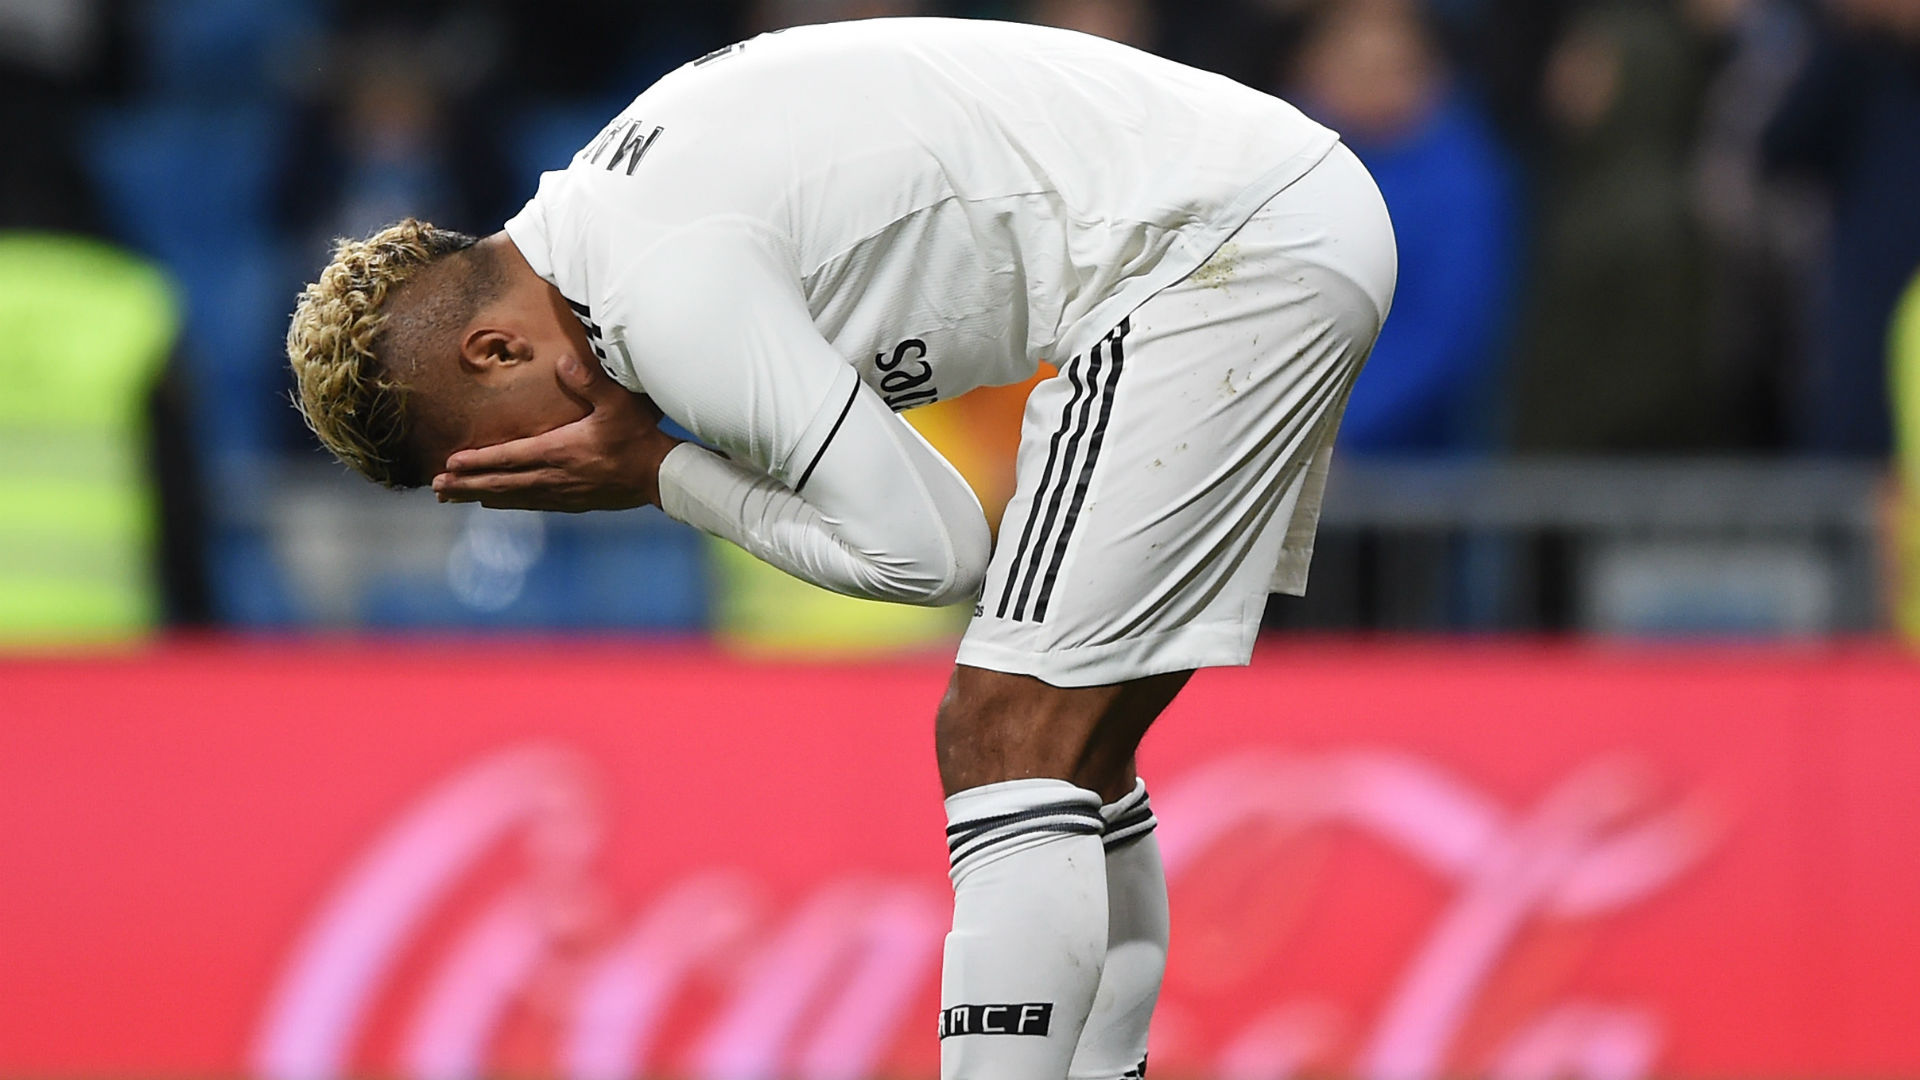 Injury-ravaged Mariano Diaz suffering from tendonitis